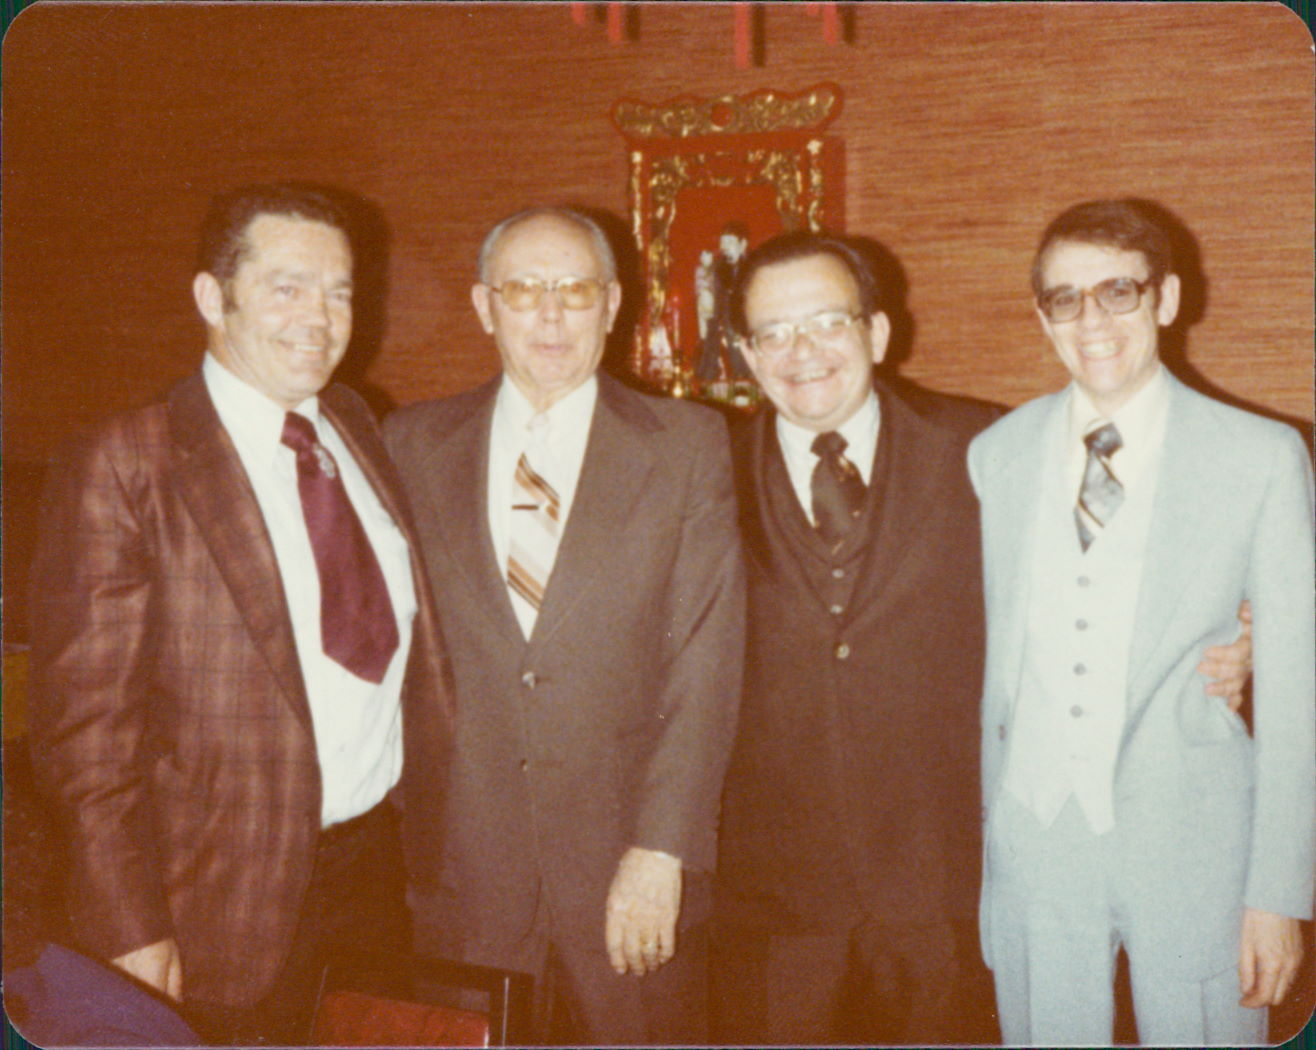 Lincoln, Eveson, Snyder, Seydel - 1979 Tax Party